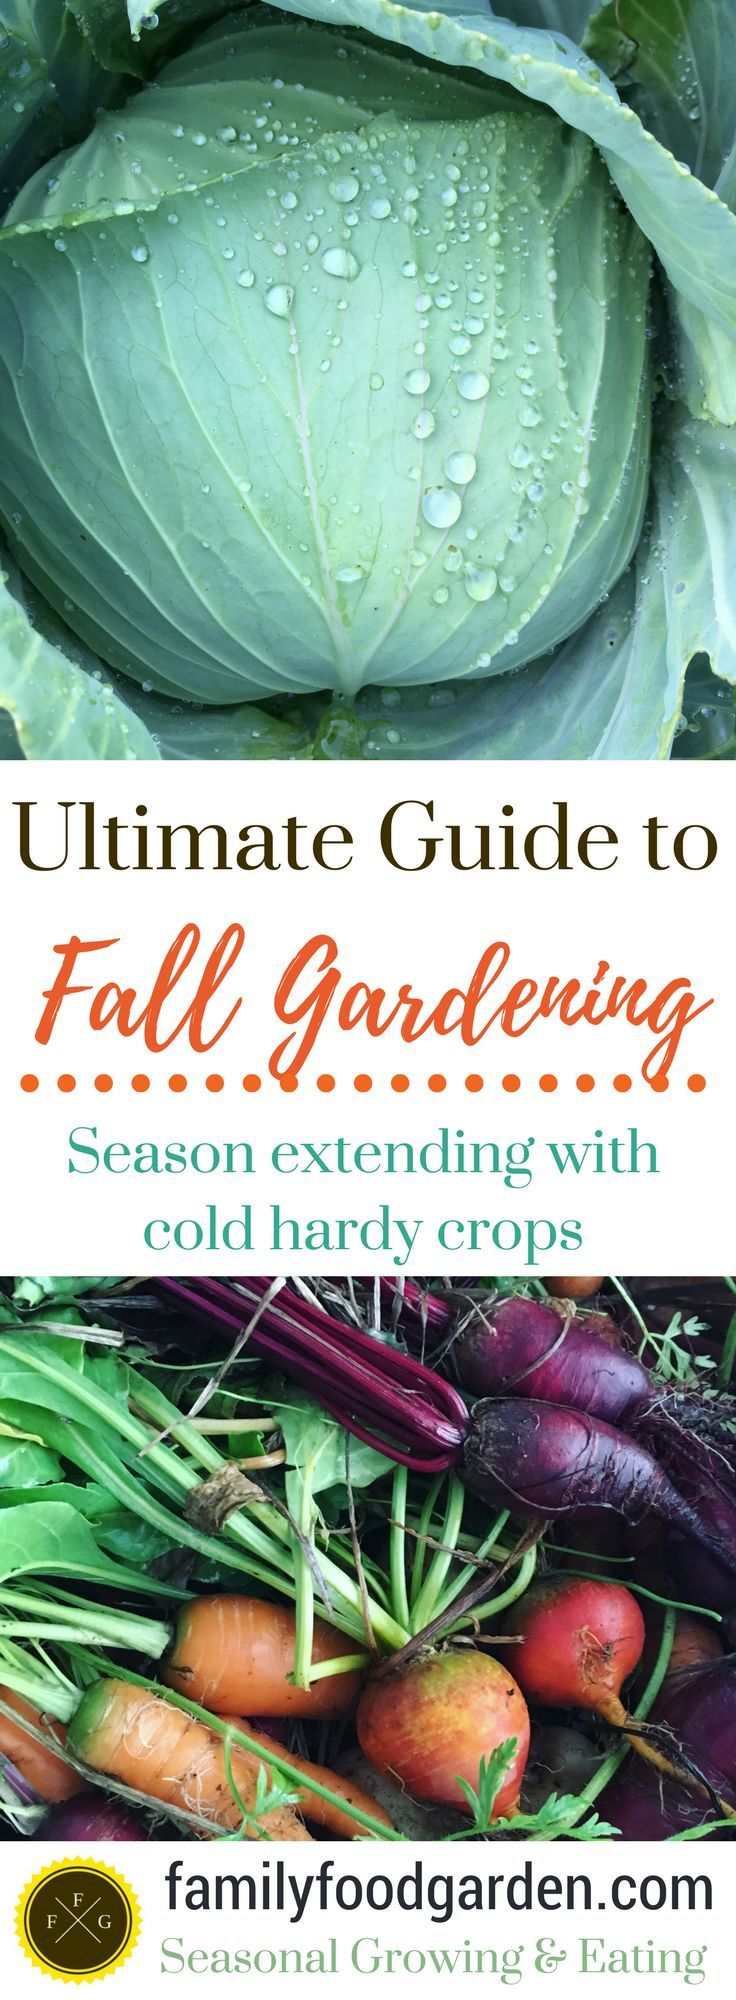 Ultimate Guide to Fall Gardening